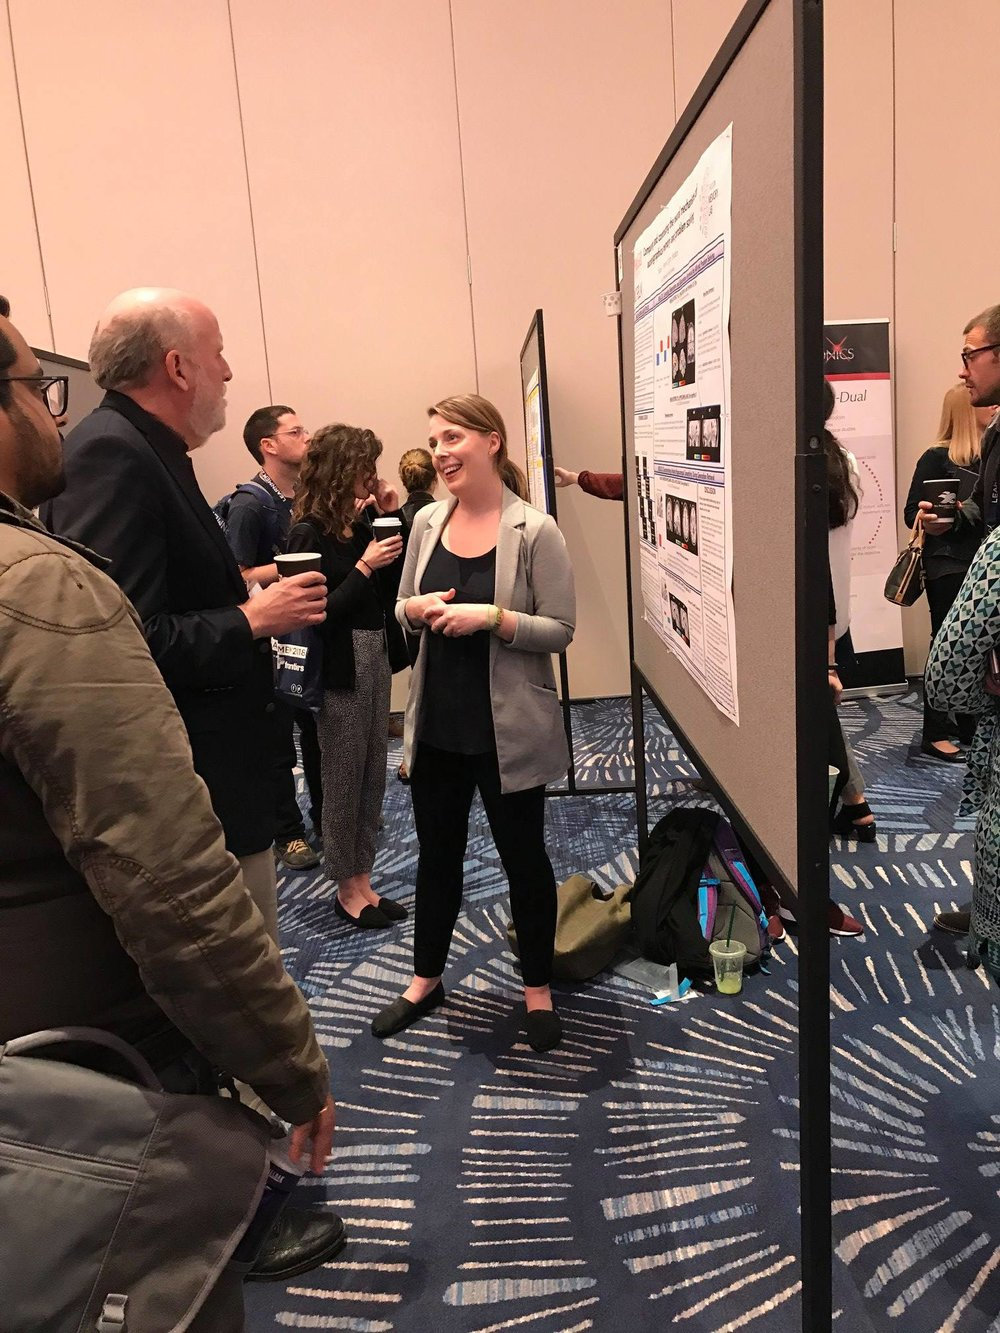 PhD candidate Sarah Peters's poster presentation at the 2018 International Conference on Learning and Memory in California.